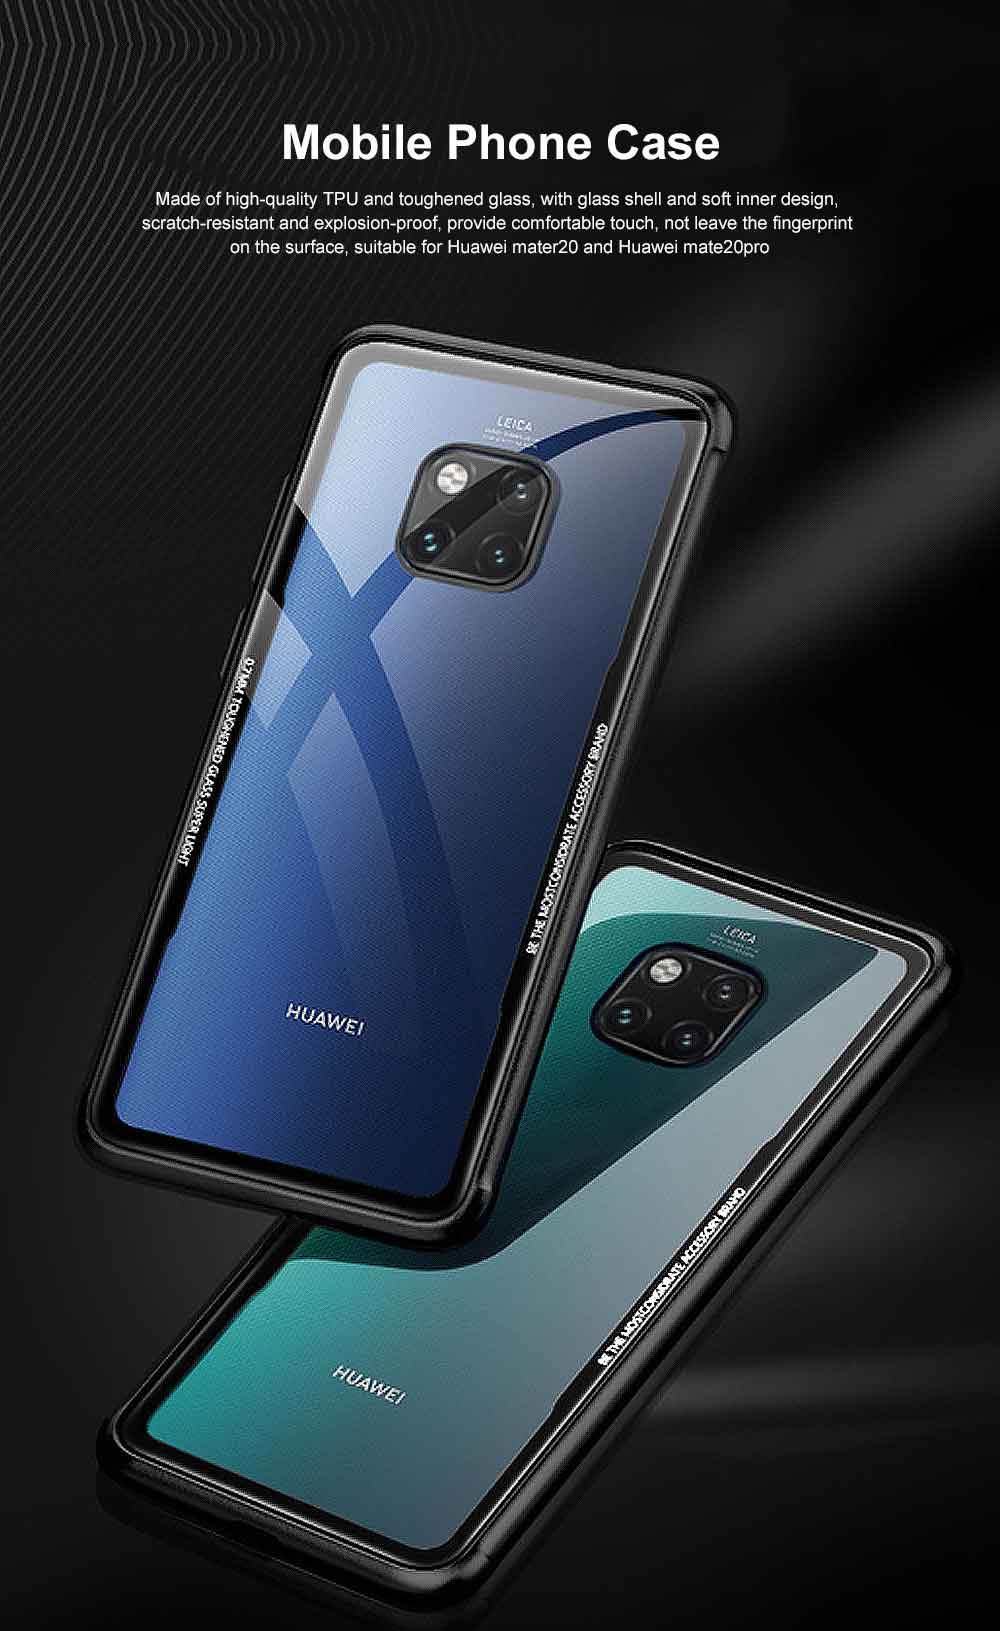 Huawei mate 20 Case with Soft TPU and Toughened Glass, Scratch-resistant and Explosion-proof, Huawei mate 20 Pro Glass Phone Case 0